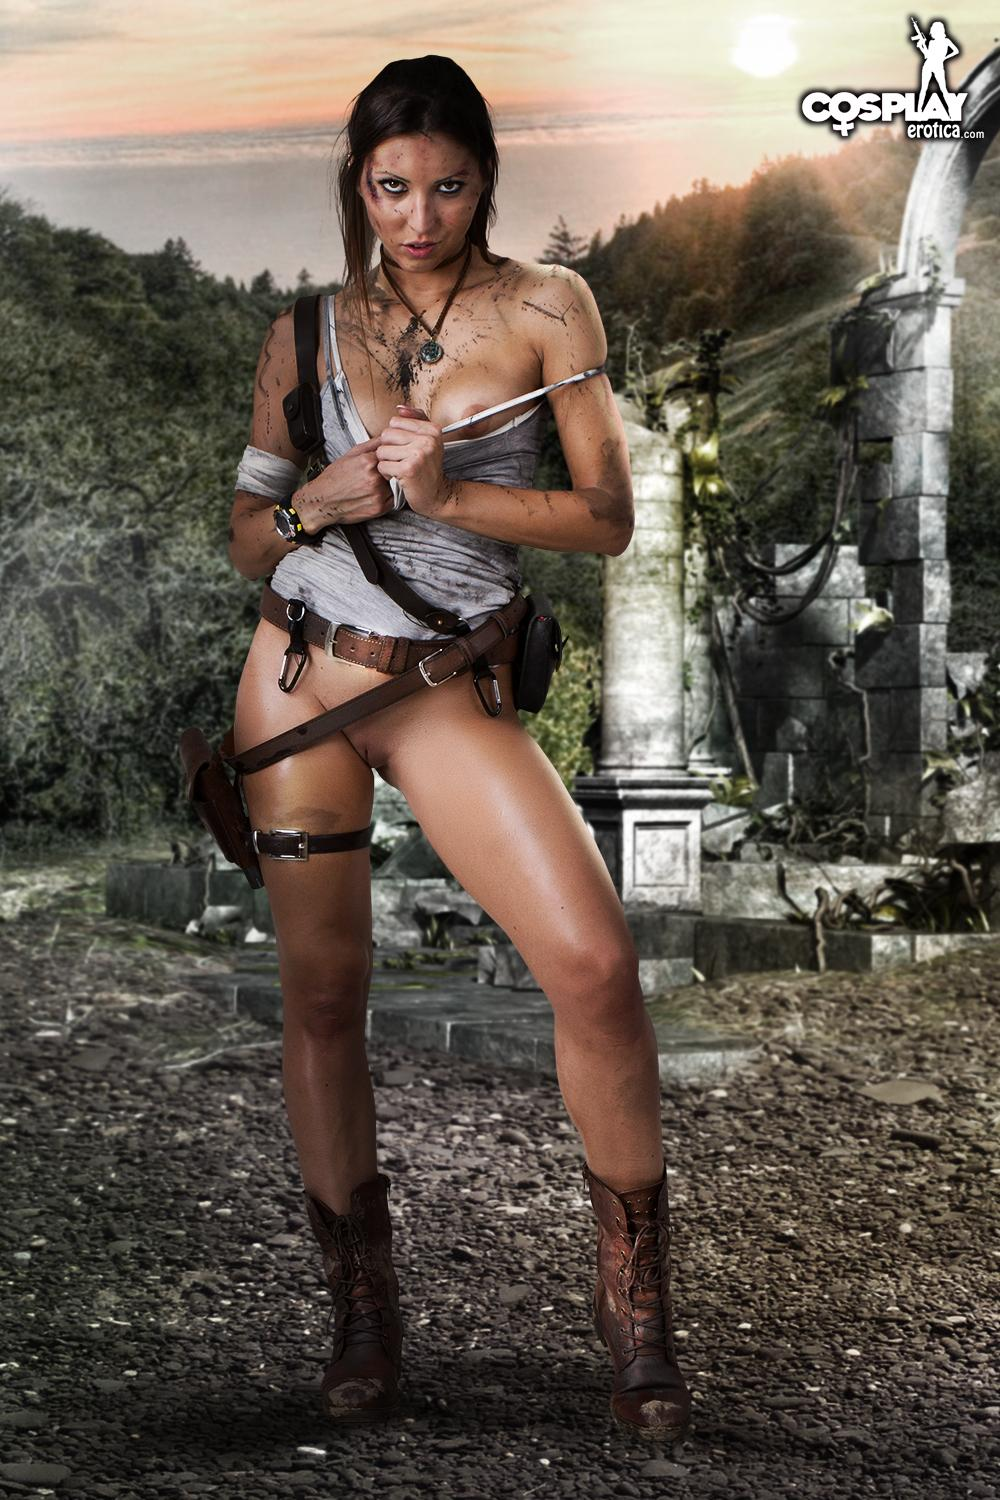 Lara croft nude figure naked comics